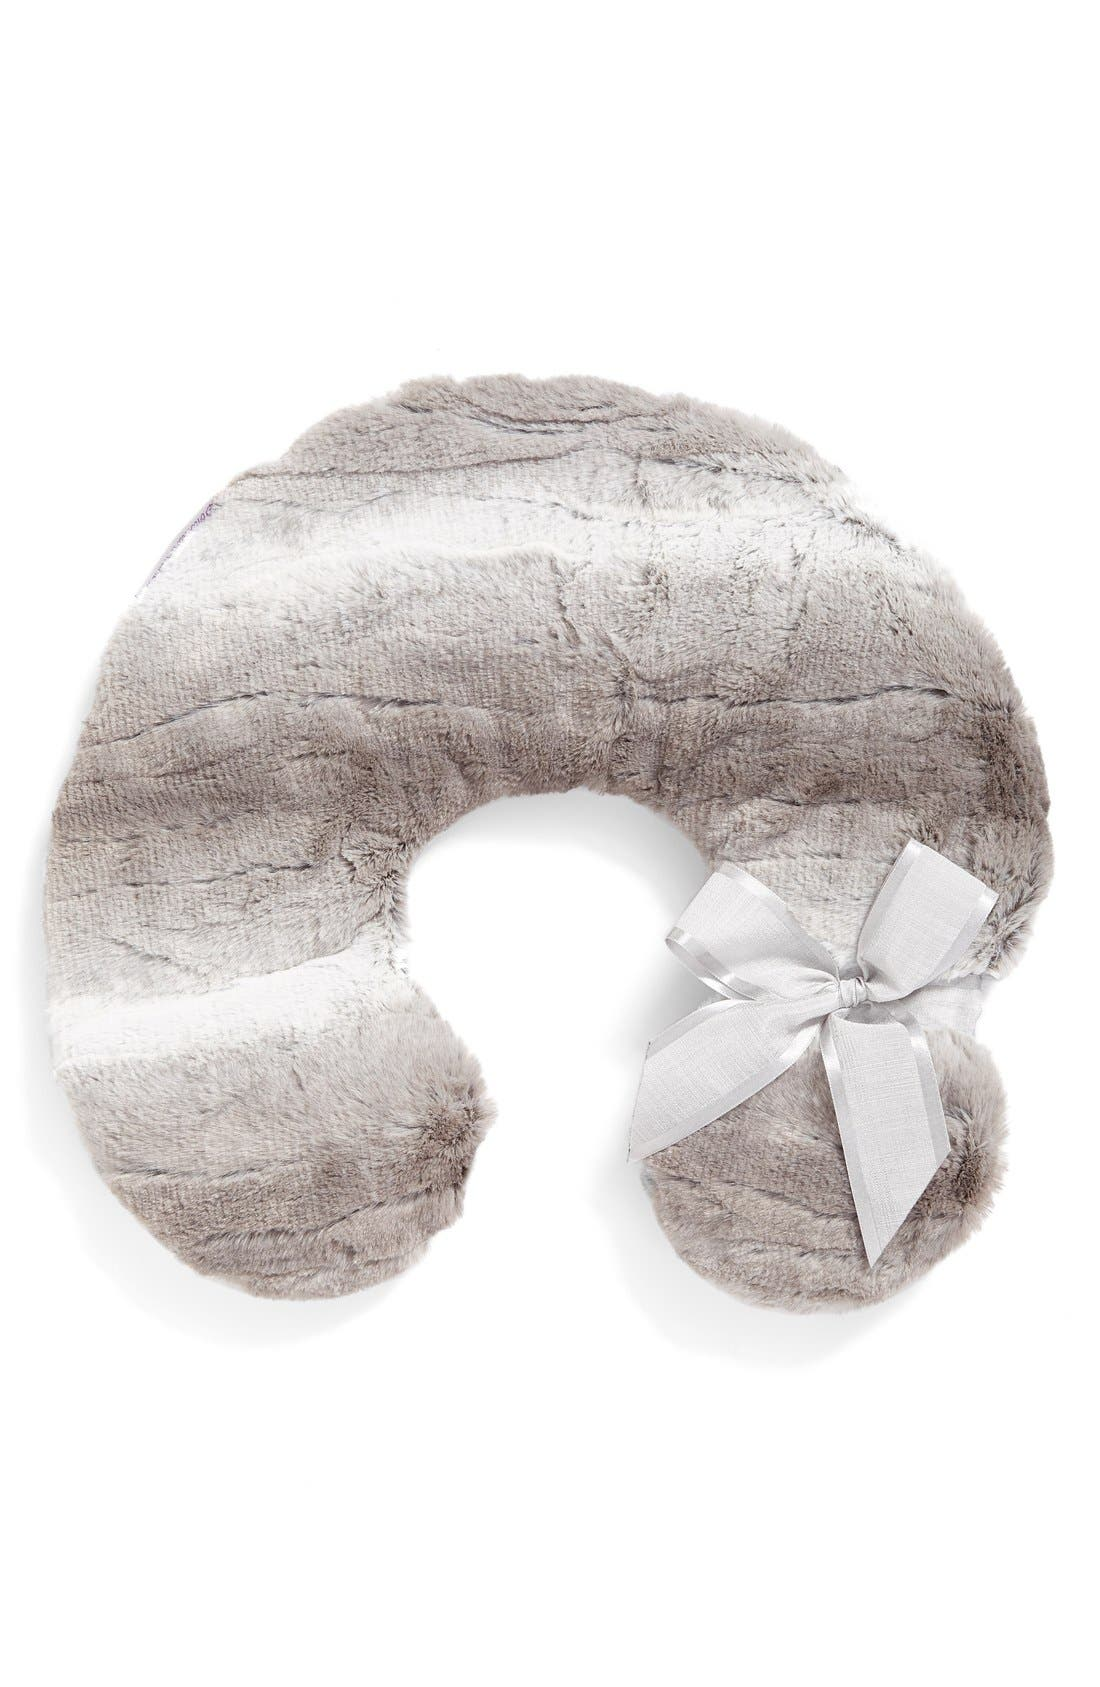 Sonoma Lavender Silver Ombré Neck Pillow ($44 Value)